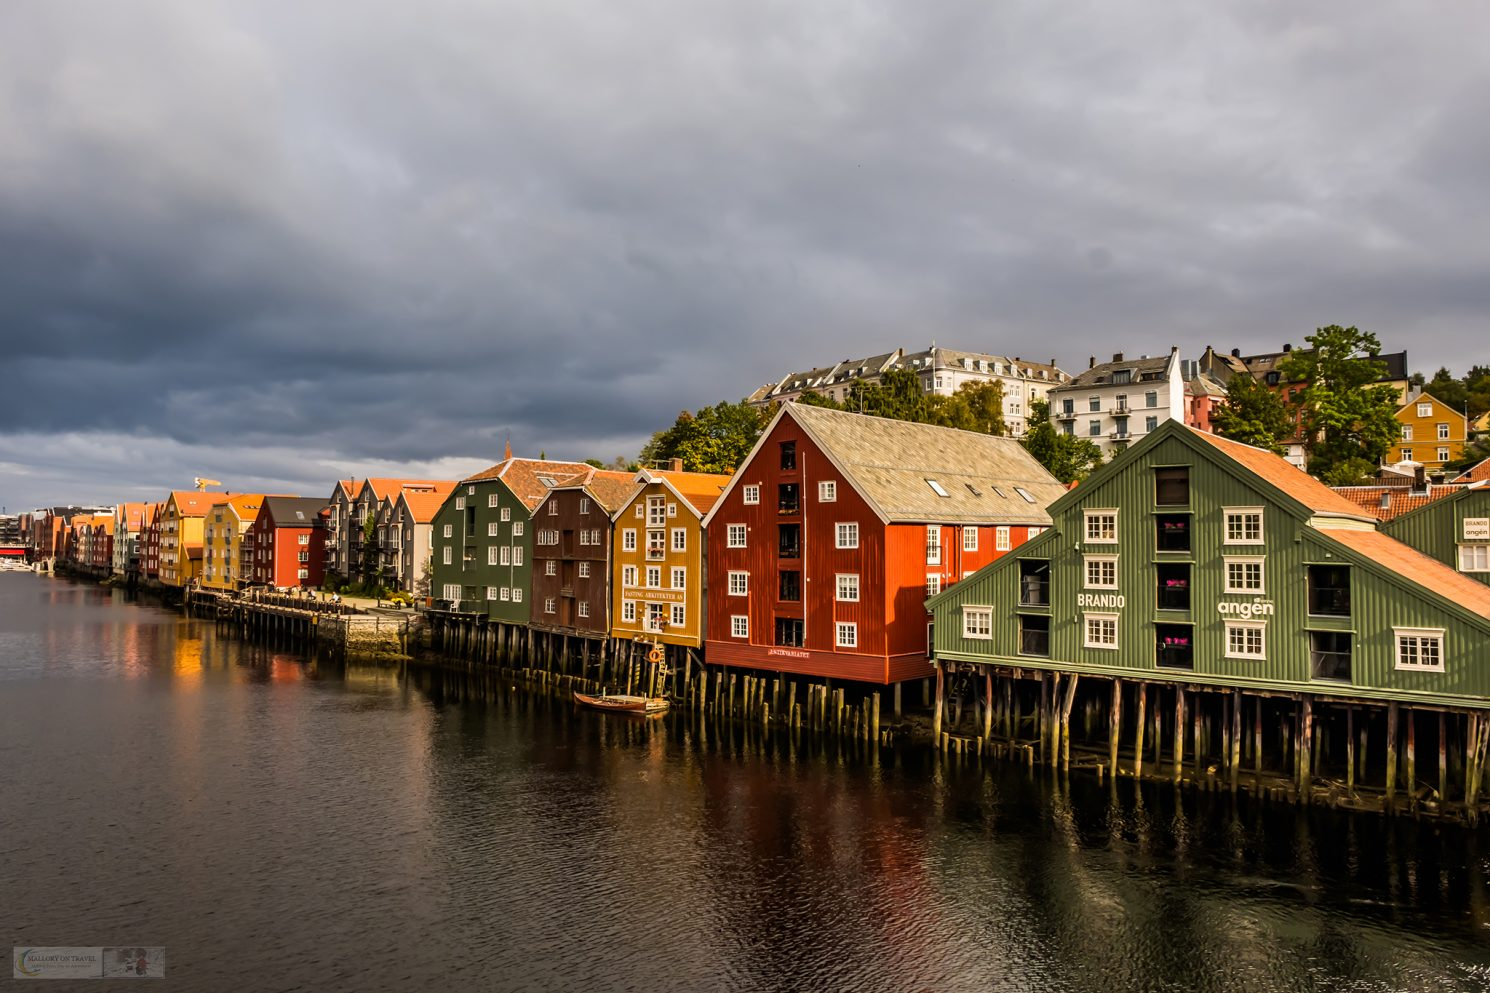 The colourful warehouses which line the River Nidelven, which runs through the city of Trondheim in Norway, Scandinavia on Mallory on Travel adventure travel, photography, travel Iain Mallory_trondelag-1-24